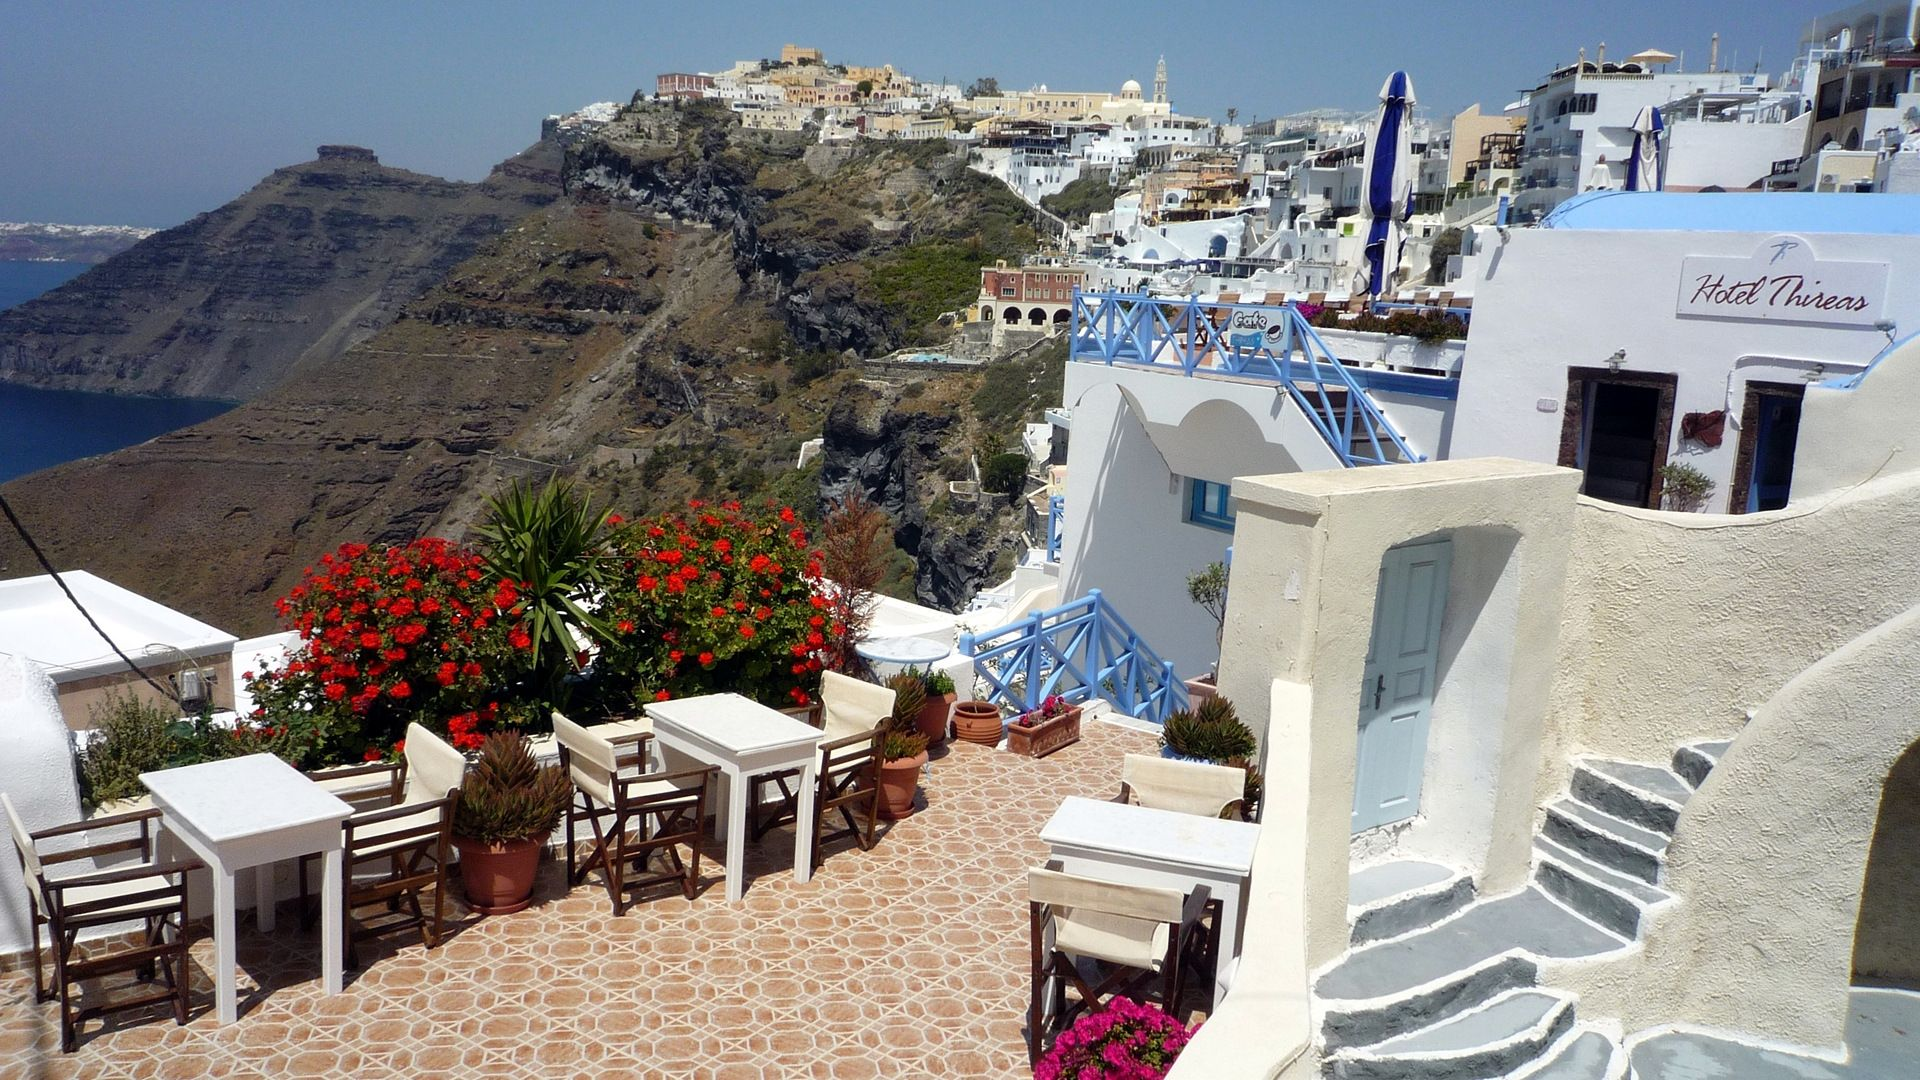 Santorini Greece Wallpaper Greece Desktop Wallpapers 1920x1080 1920x1080